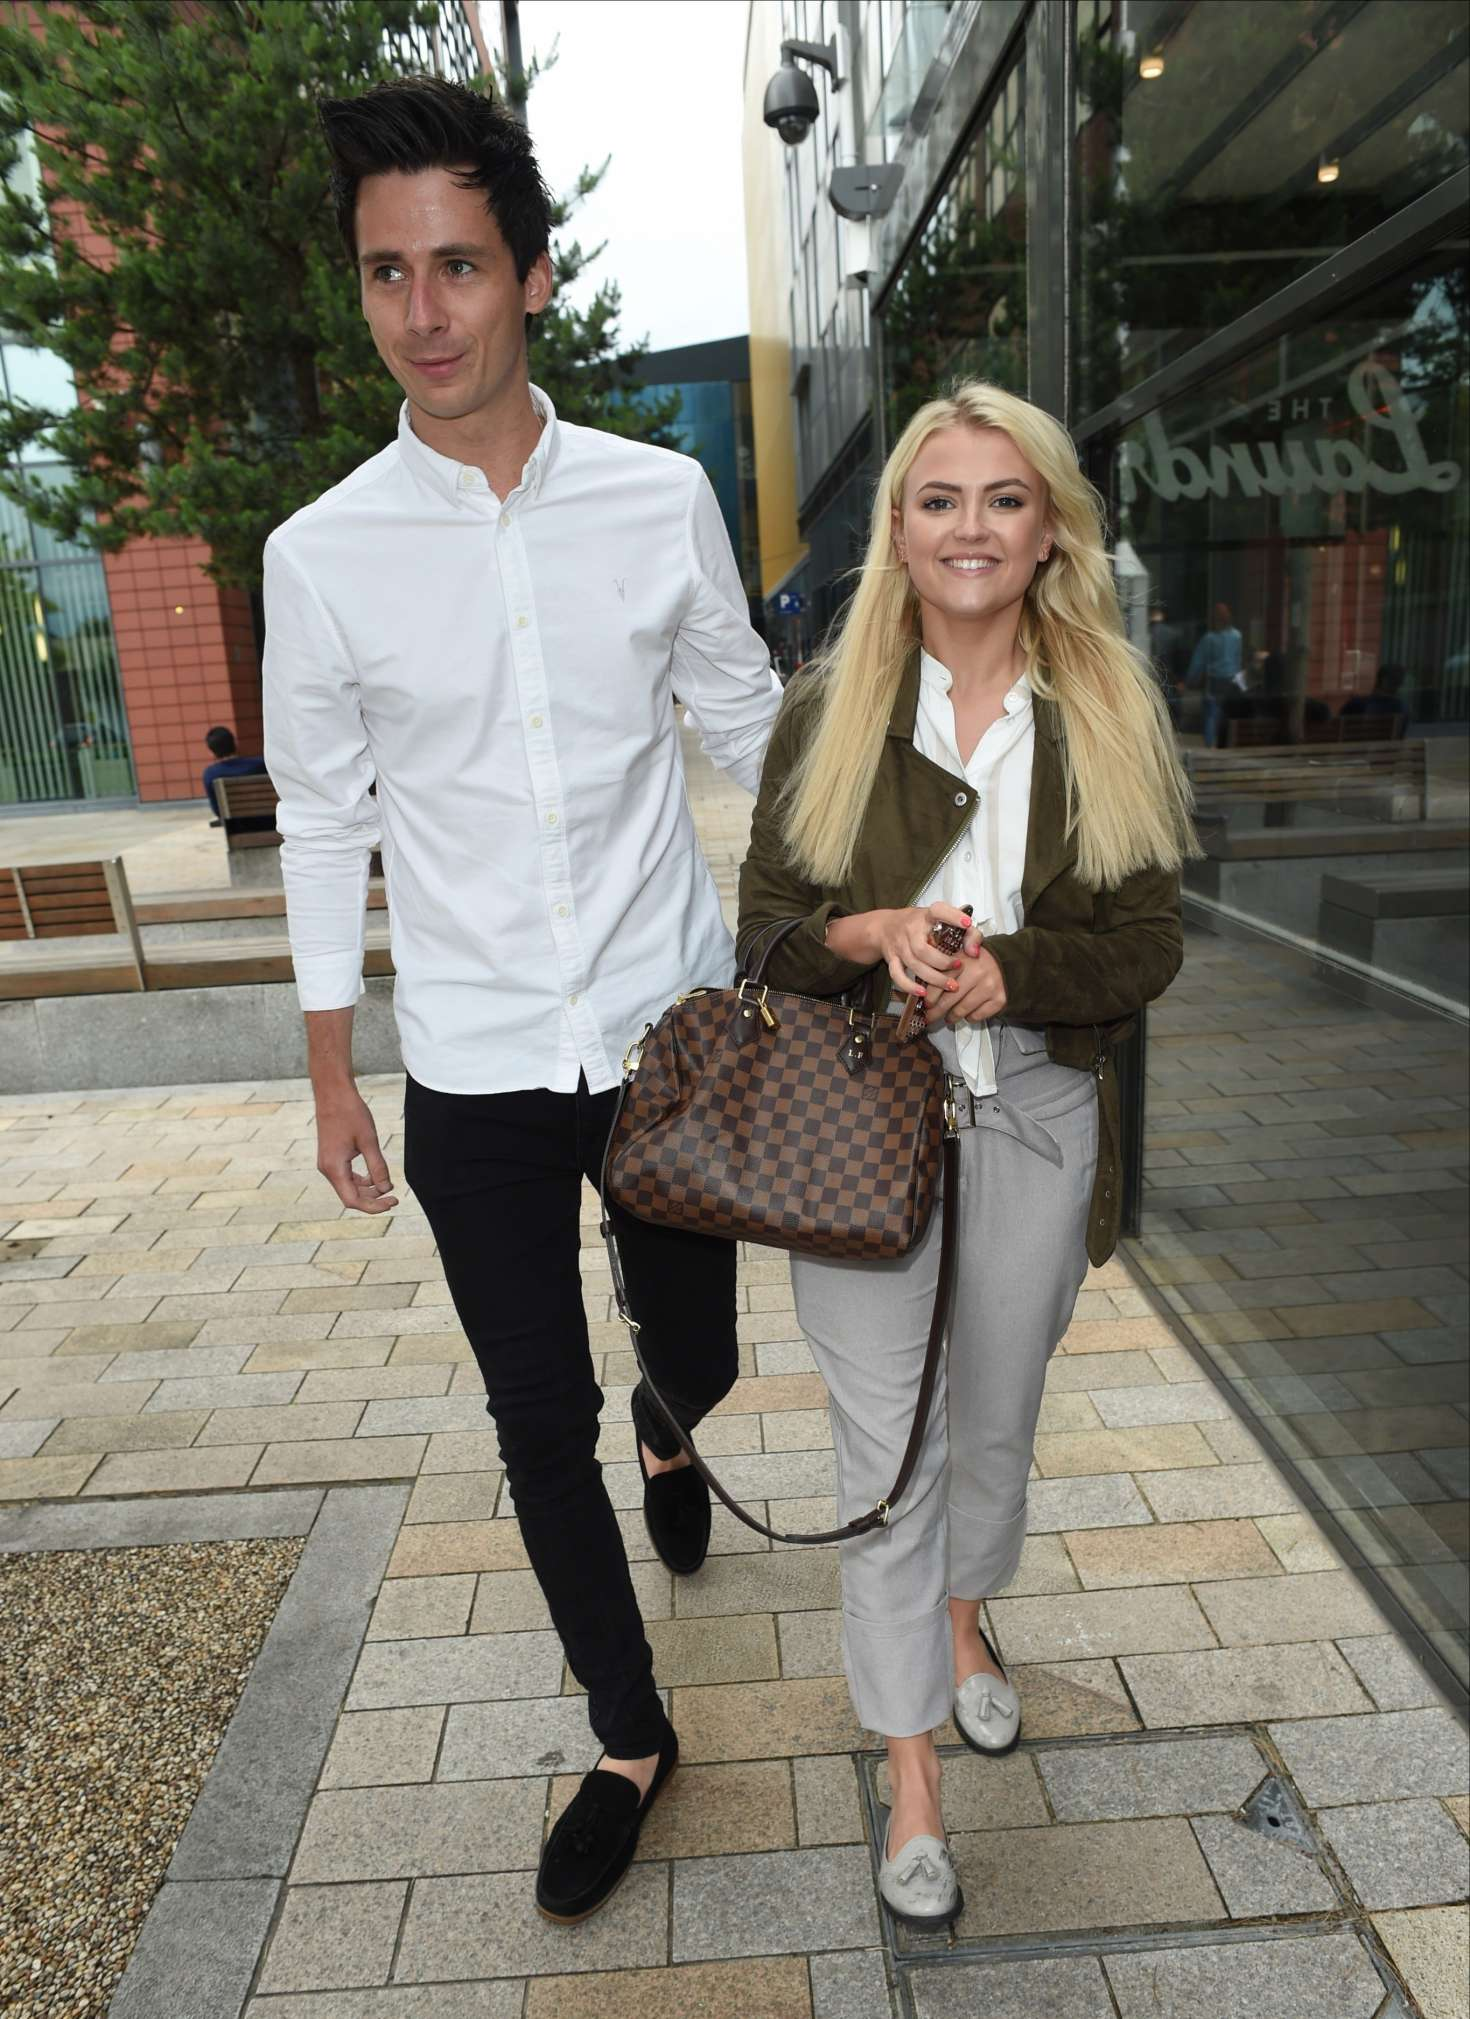 Lucy Fallon And Boyfriend Tom Leech Out In Manchester 16 Gotceleb